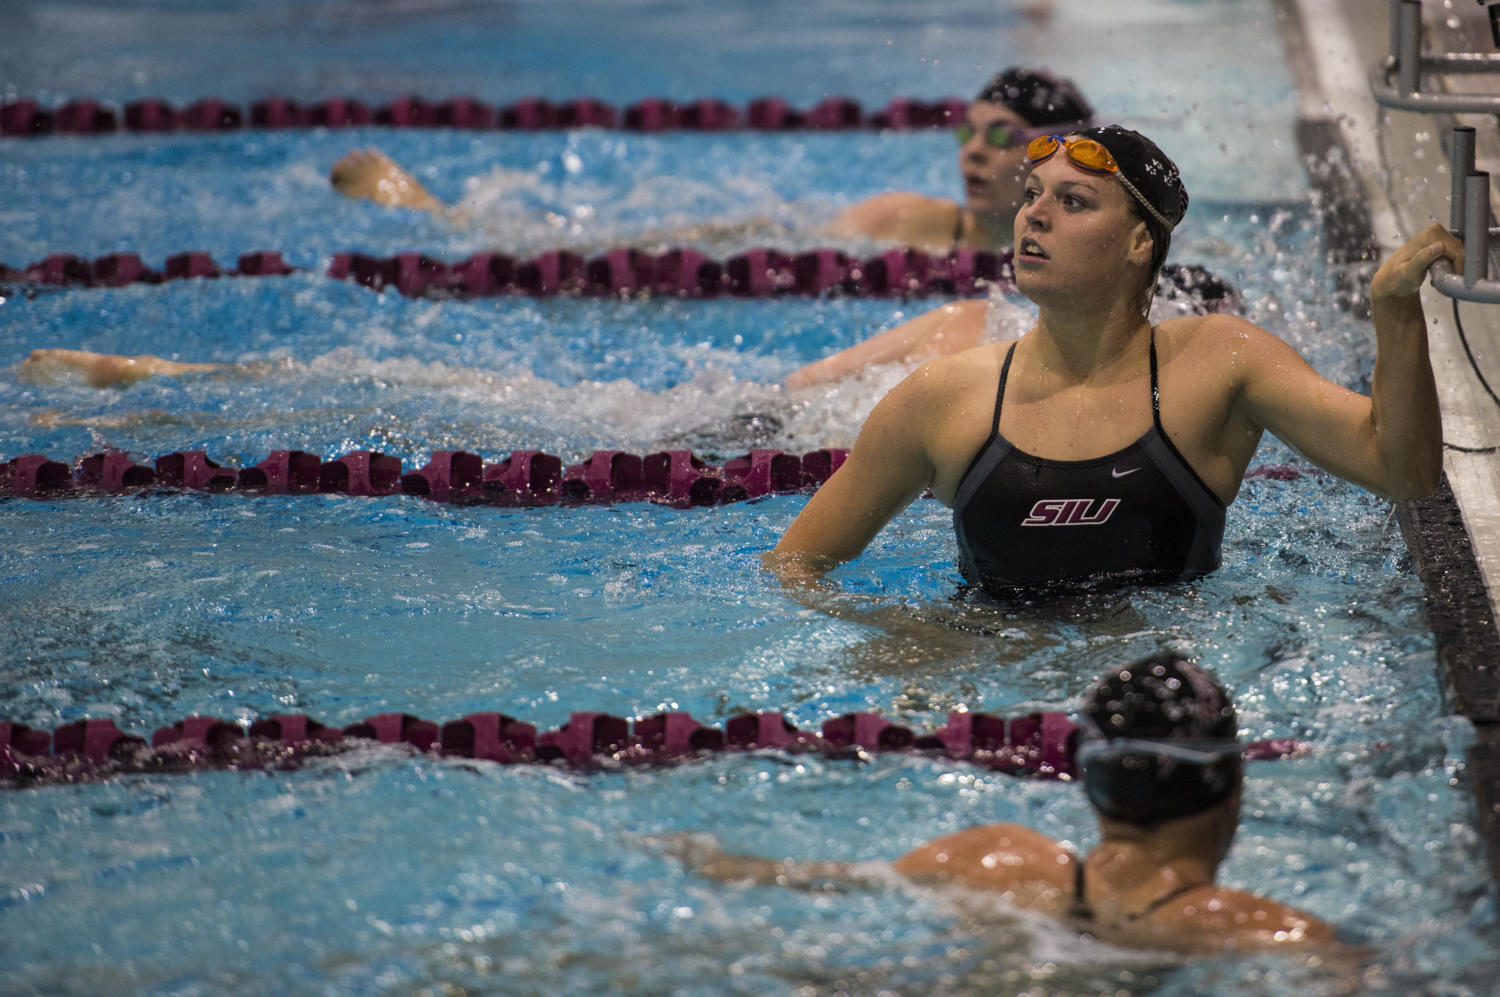 Freshman+Abbie+Young+checks+the+scoreboard+Friday%2C+Sept.+15%2C+2017%2C+during+the+Salukis%27+first+meet+of+the+season+against+Lindenwood+University+at+the+Dr.+Edward+Shea+Natatorium.+%28Dylan+Nelson+%7C+Dylan_Nelson99%29